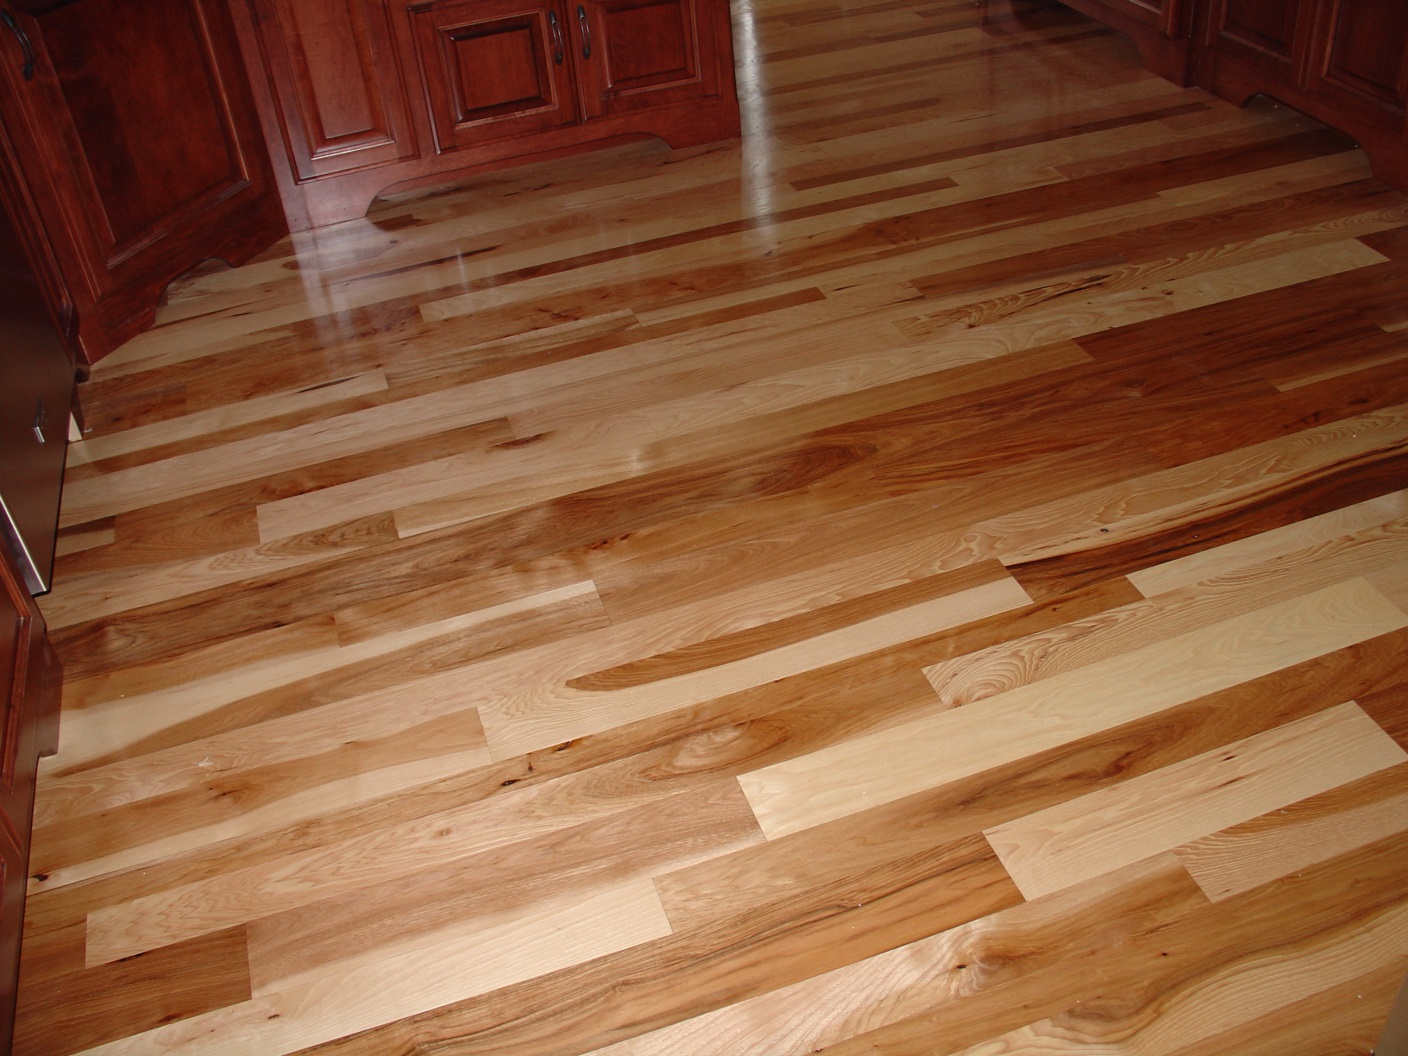 Using Color To Add Personality To Your Hardwood Flooring